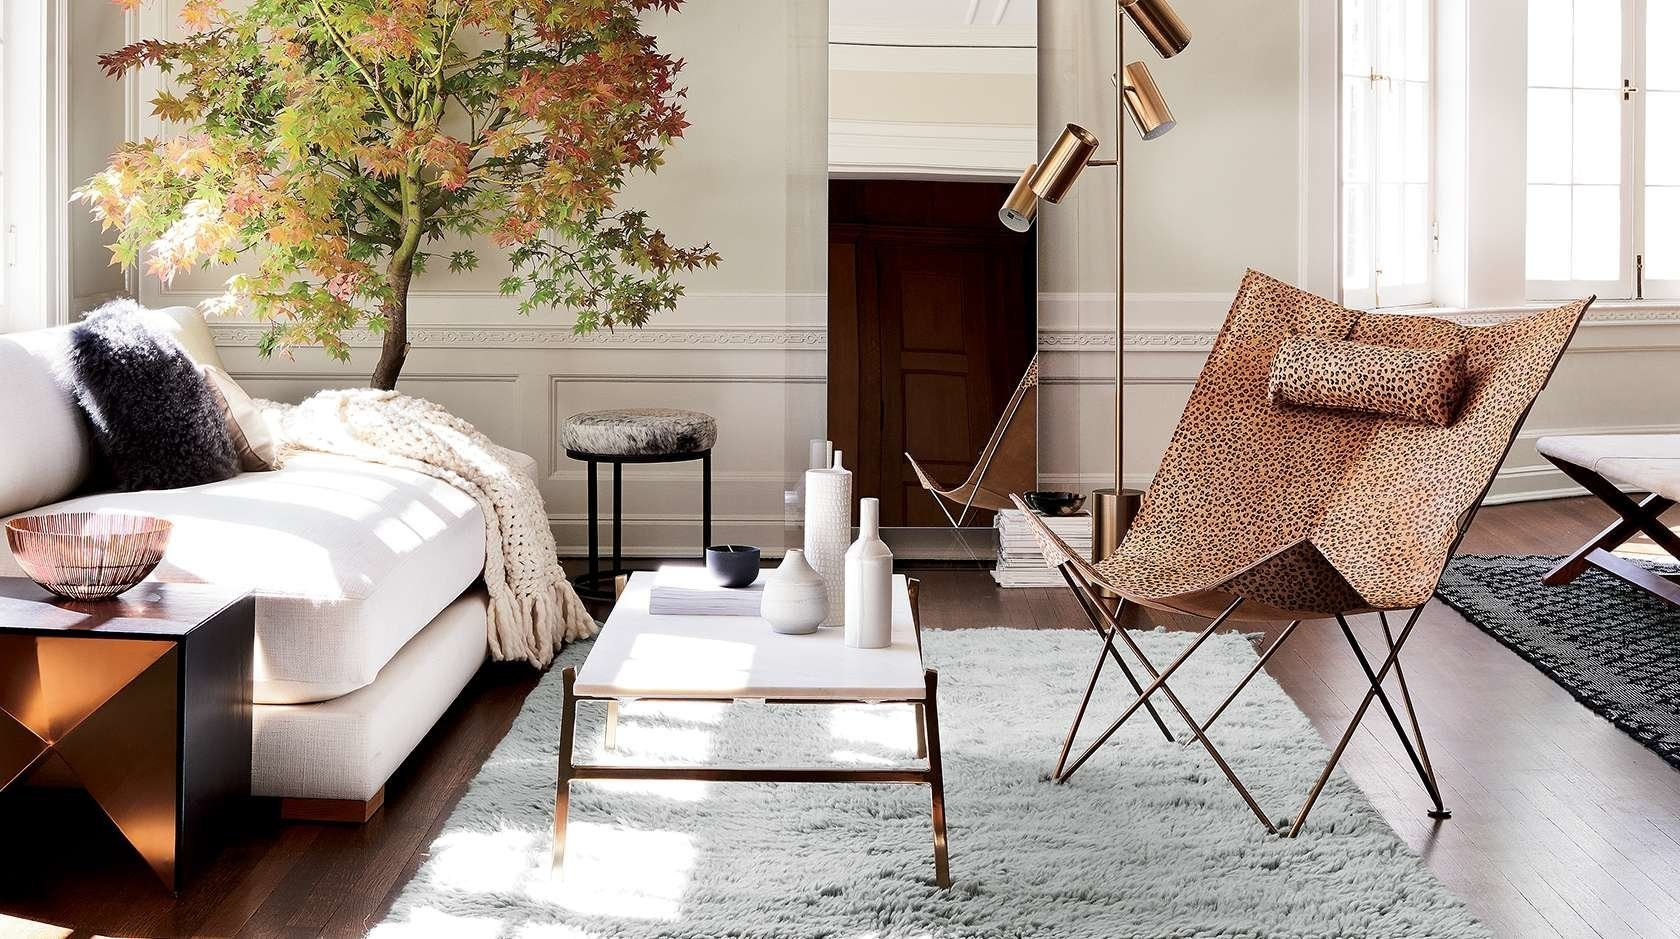 14 Furniture Stores Like West Elm To Buy Mid Century